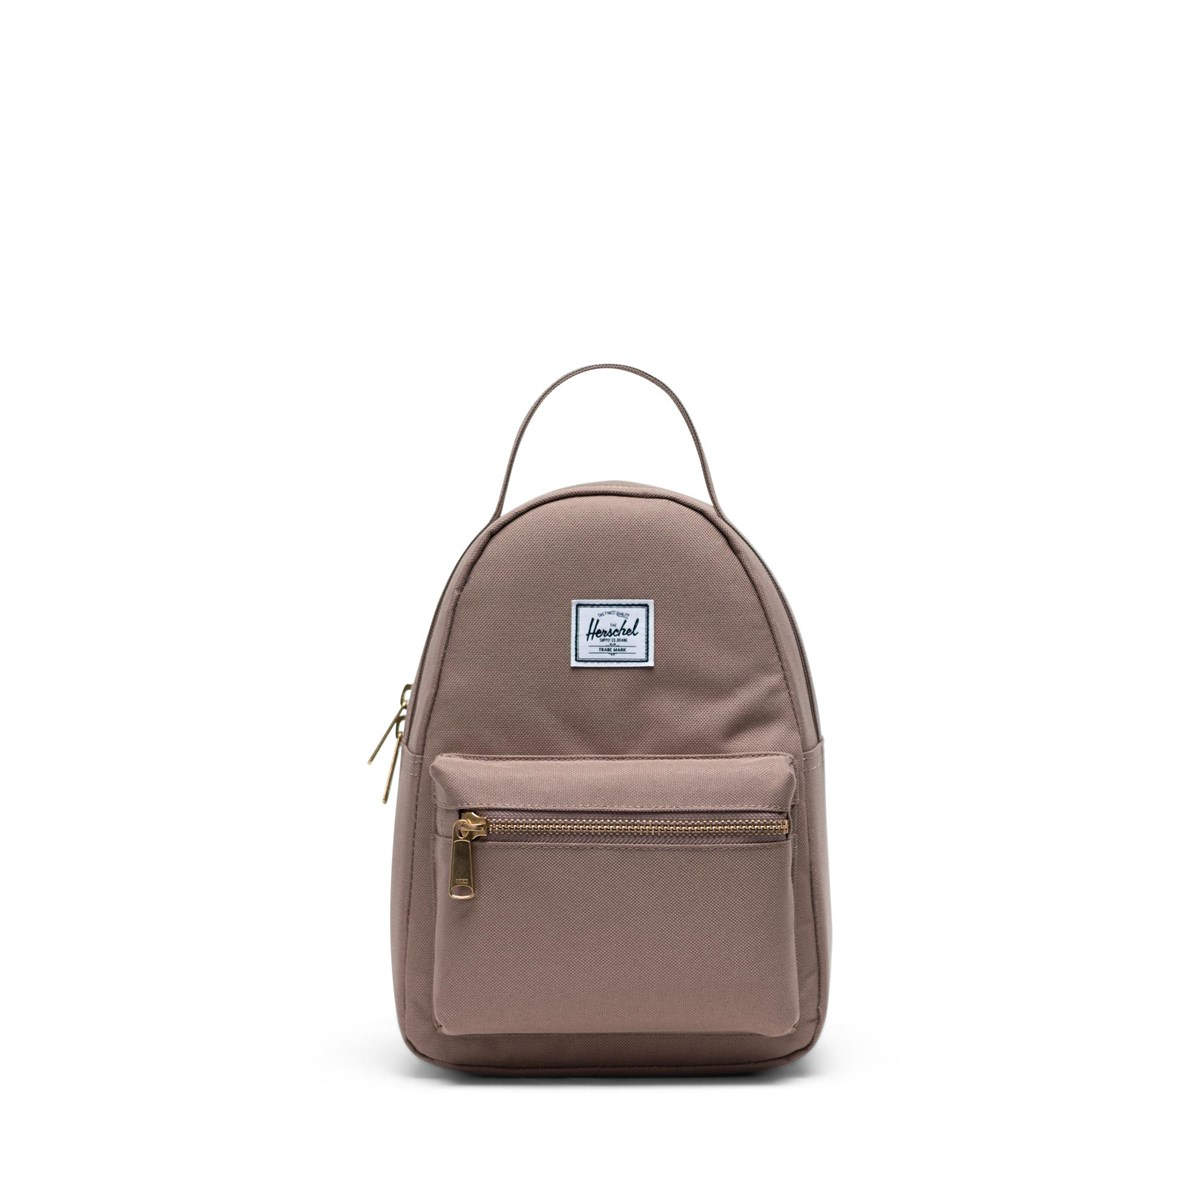 Nova Mini Backpack in Beige